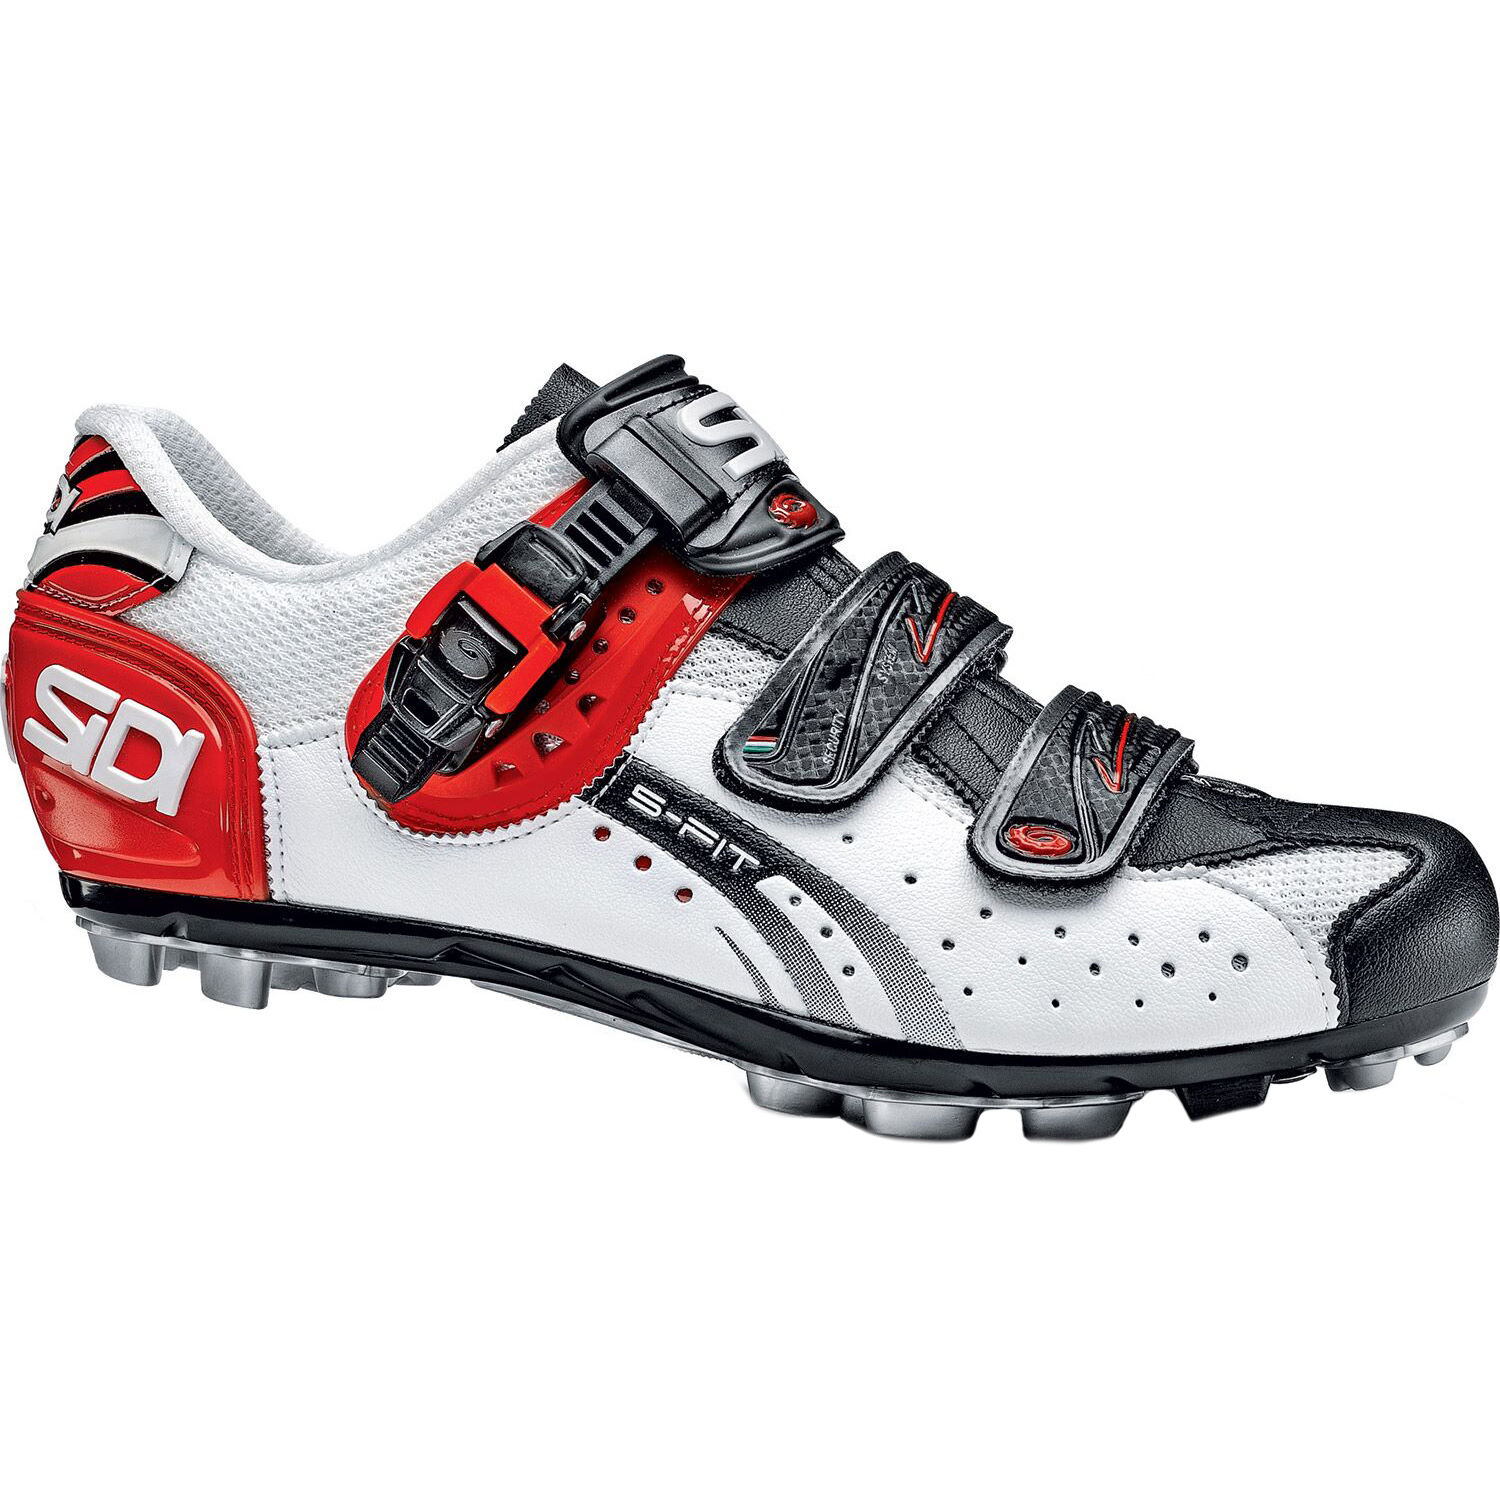 Wiggle | Sidi Eagle 5-Fit MTB Shoe